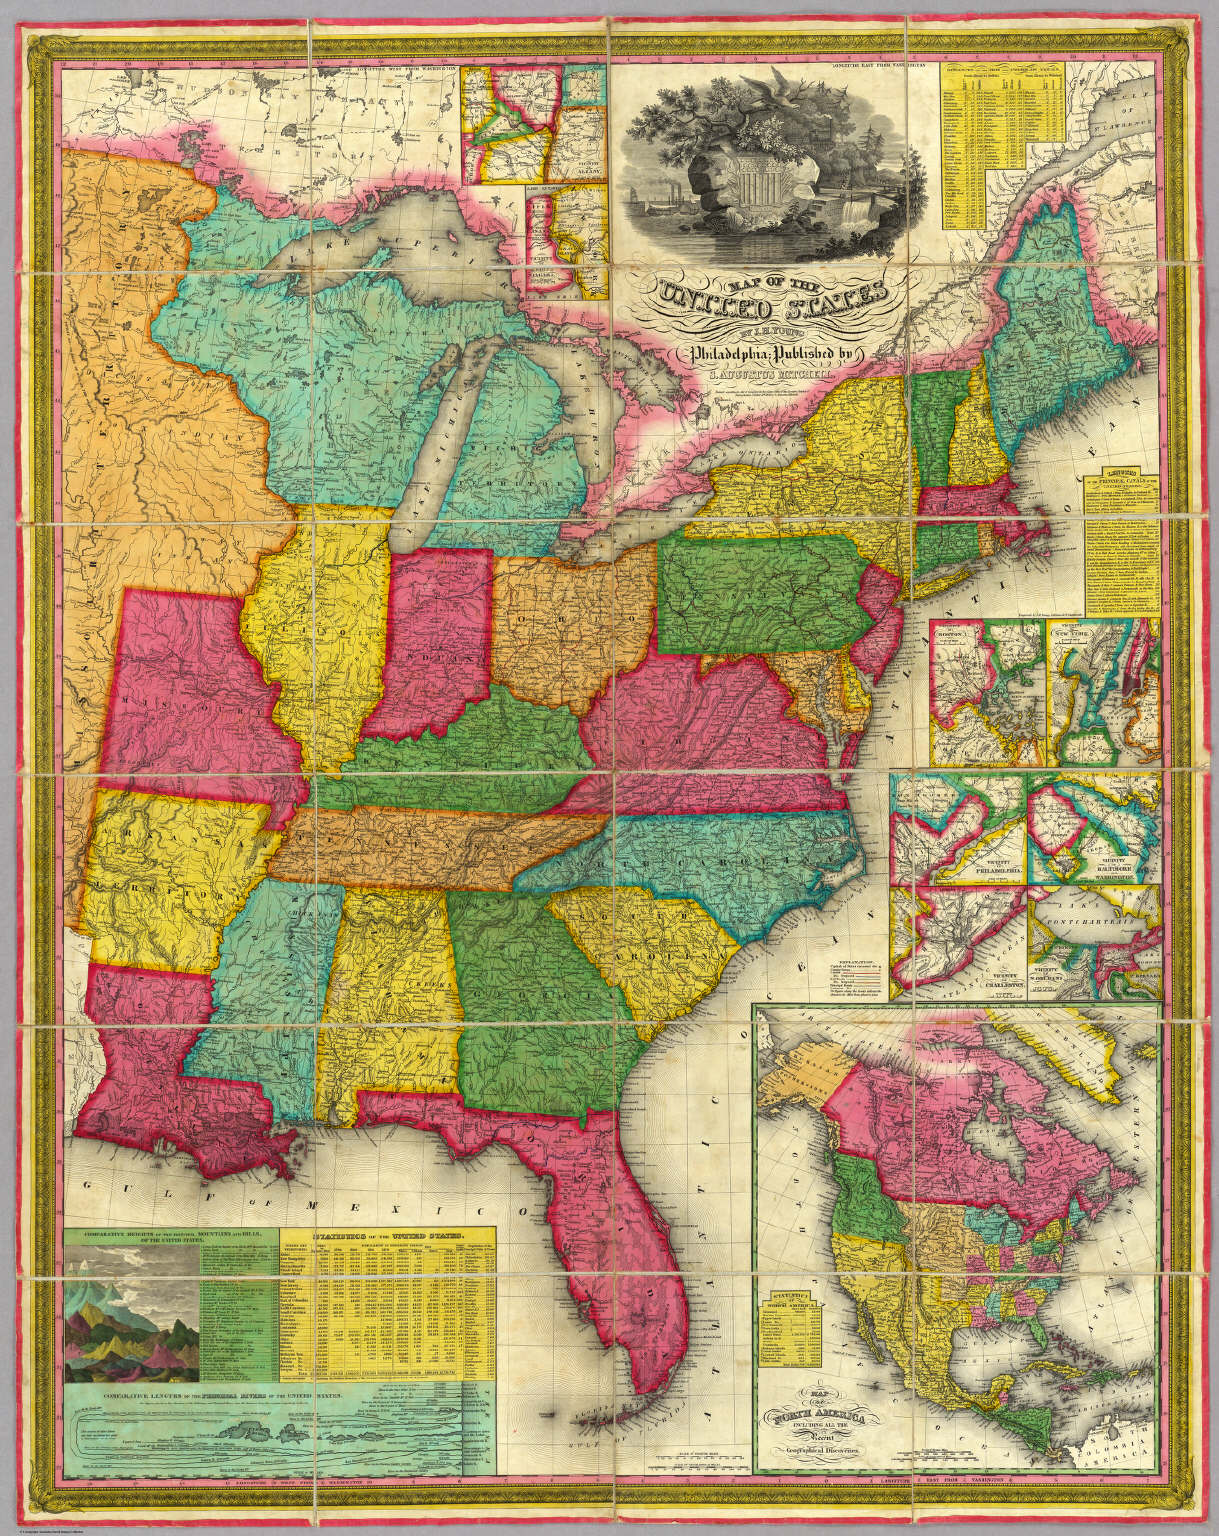 Map Of The United States David Rumsey Historical Map Collection - Map of the states of the united states